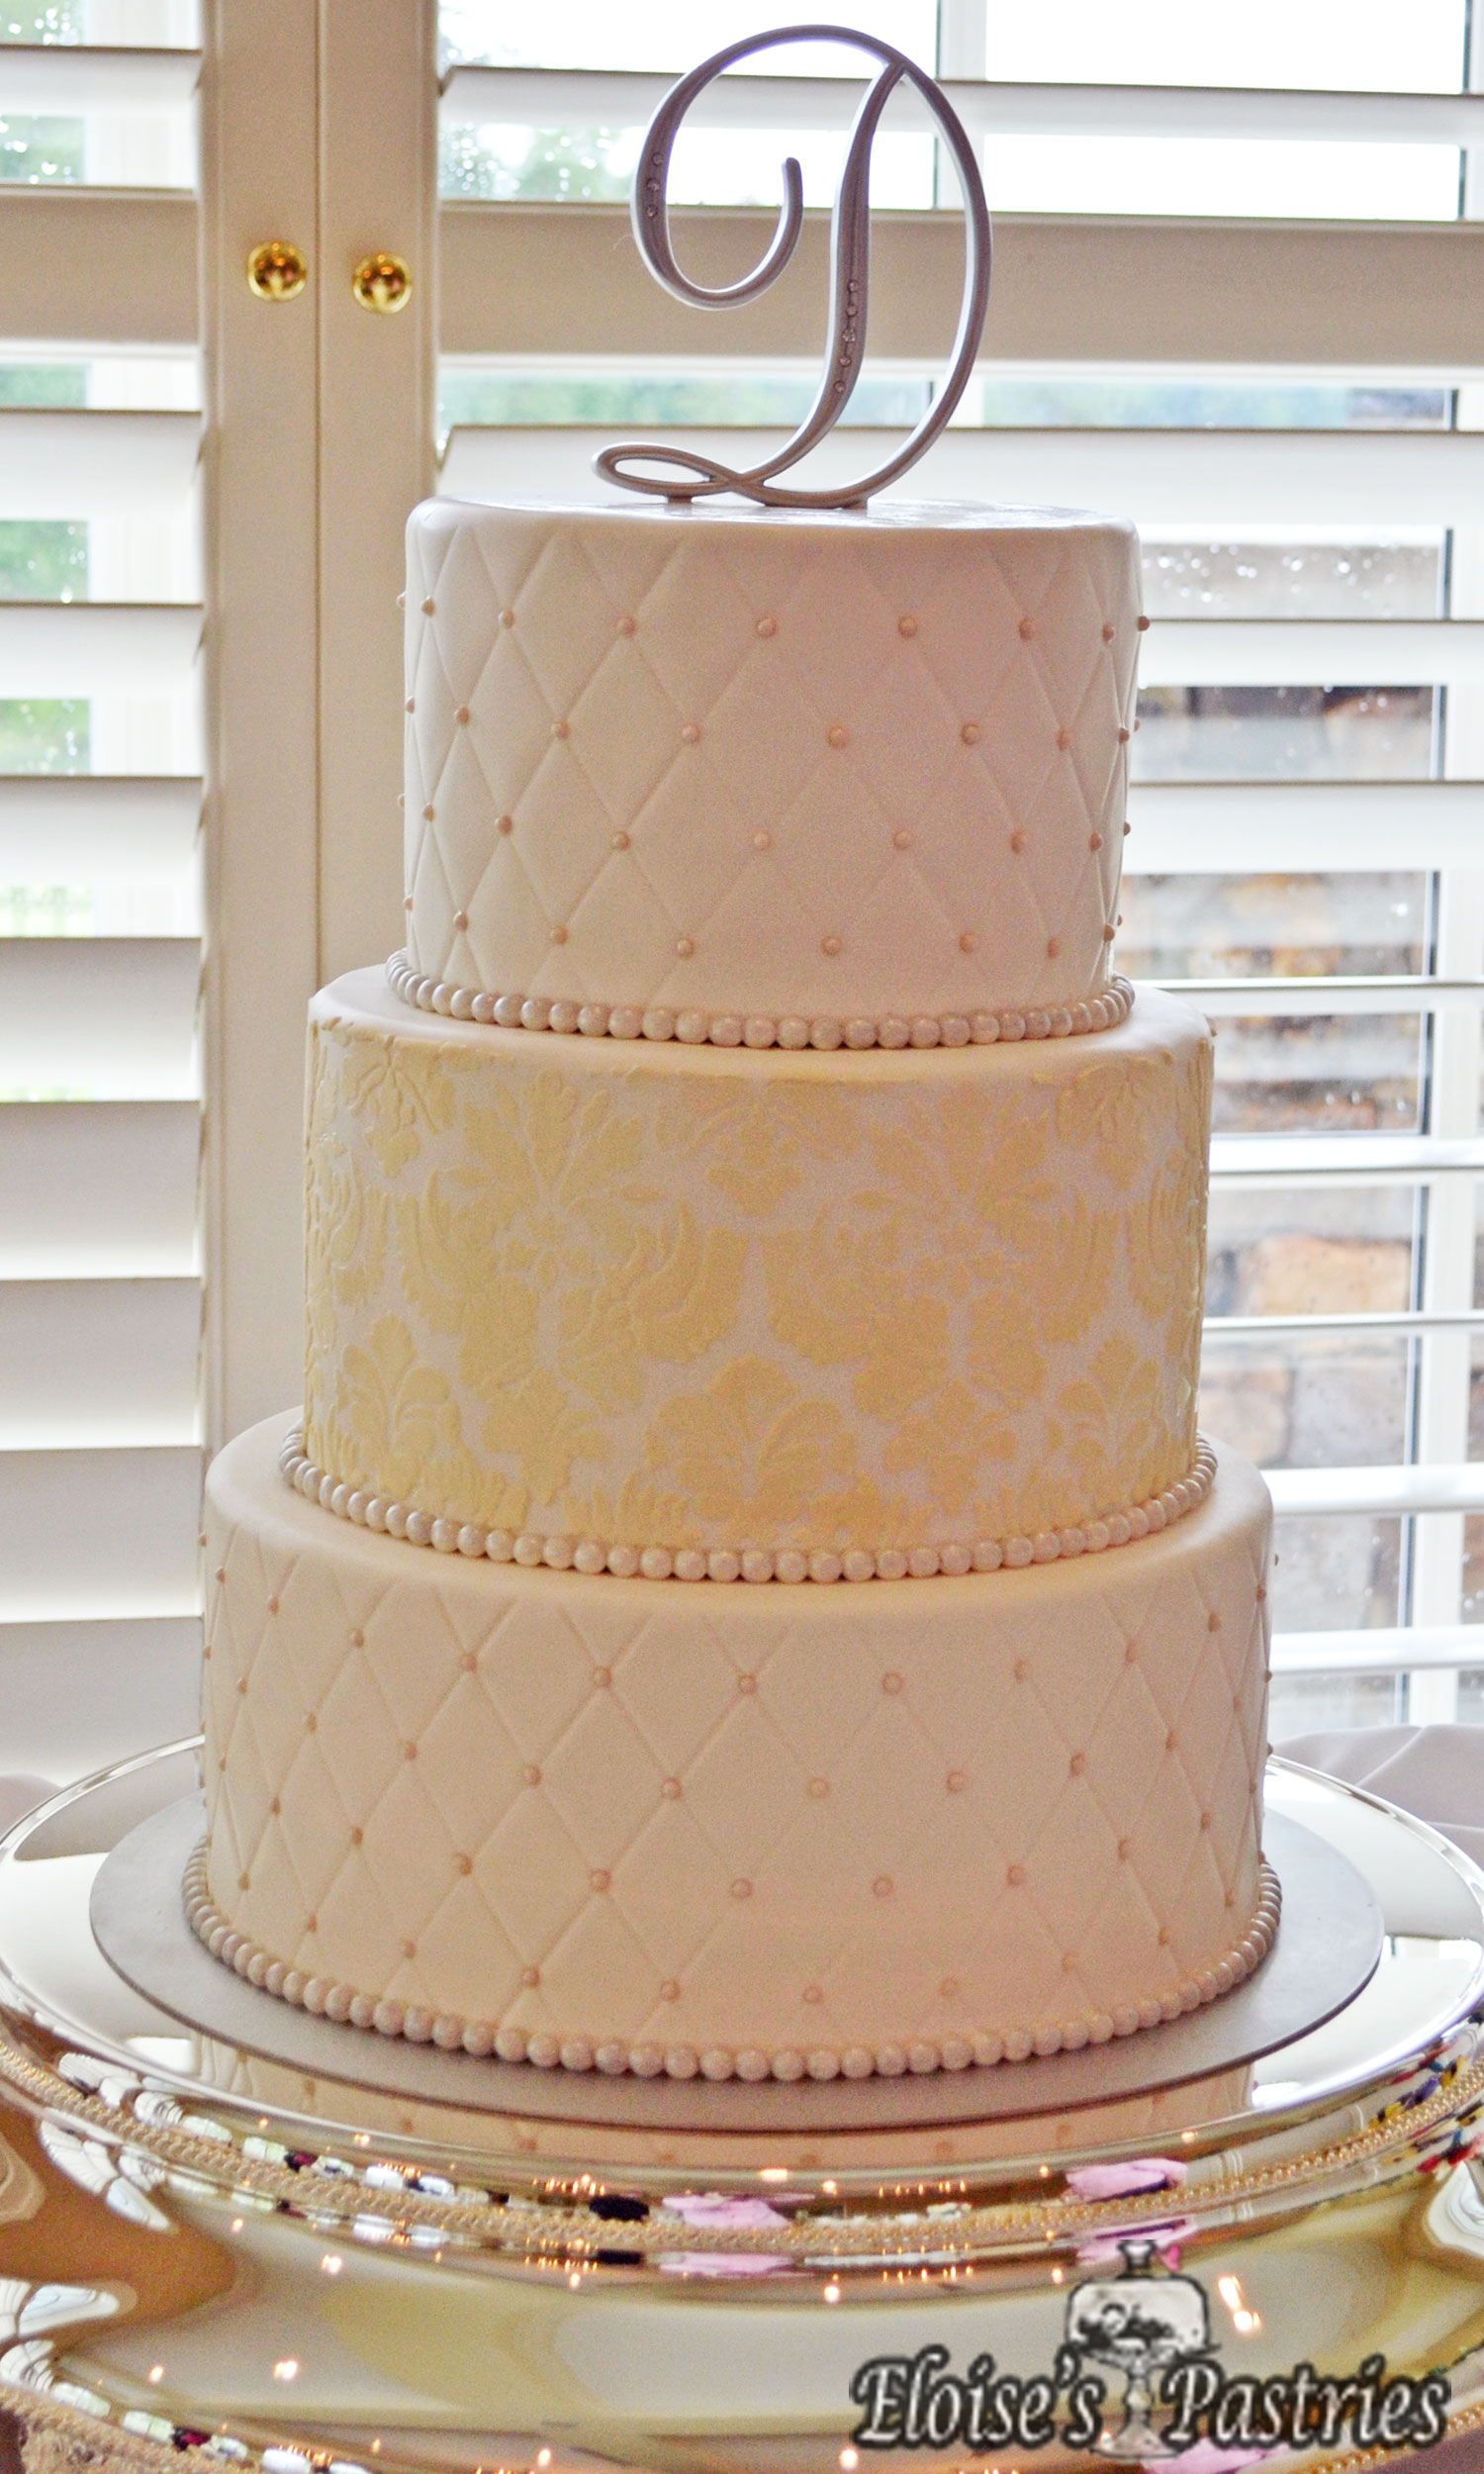 White & Gold Quilted Texture Cake